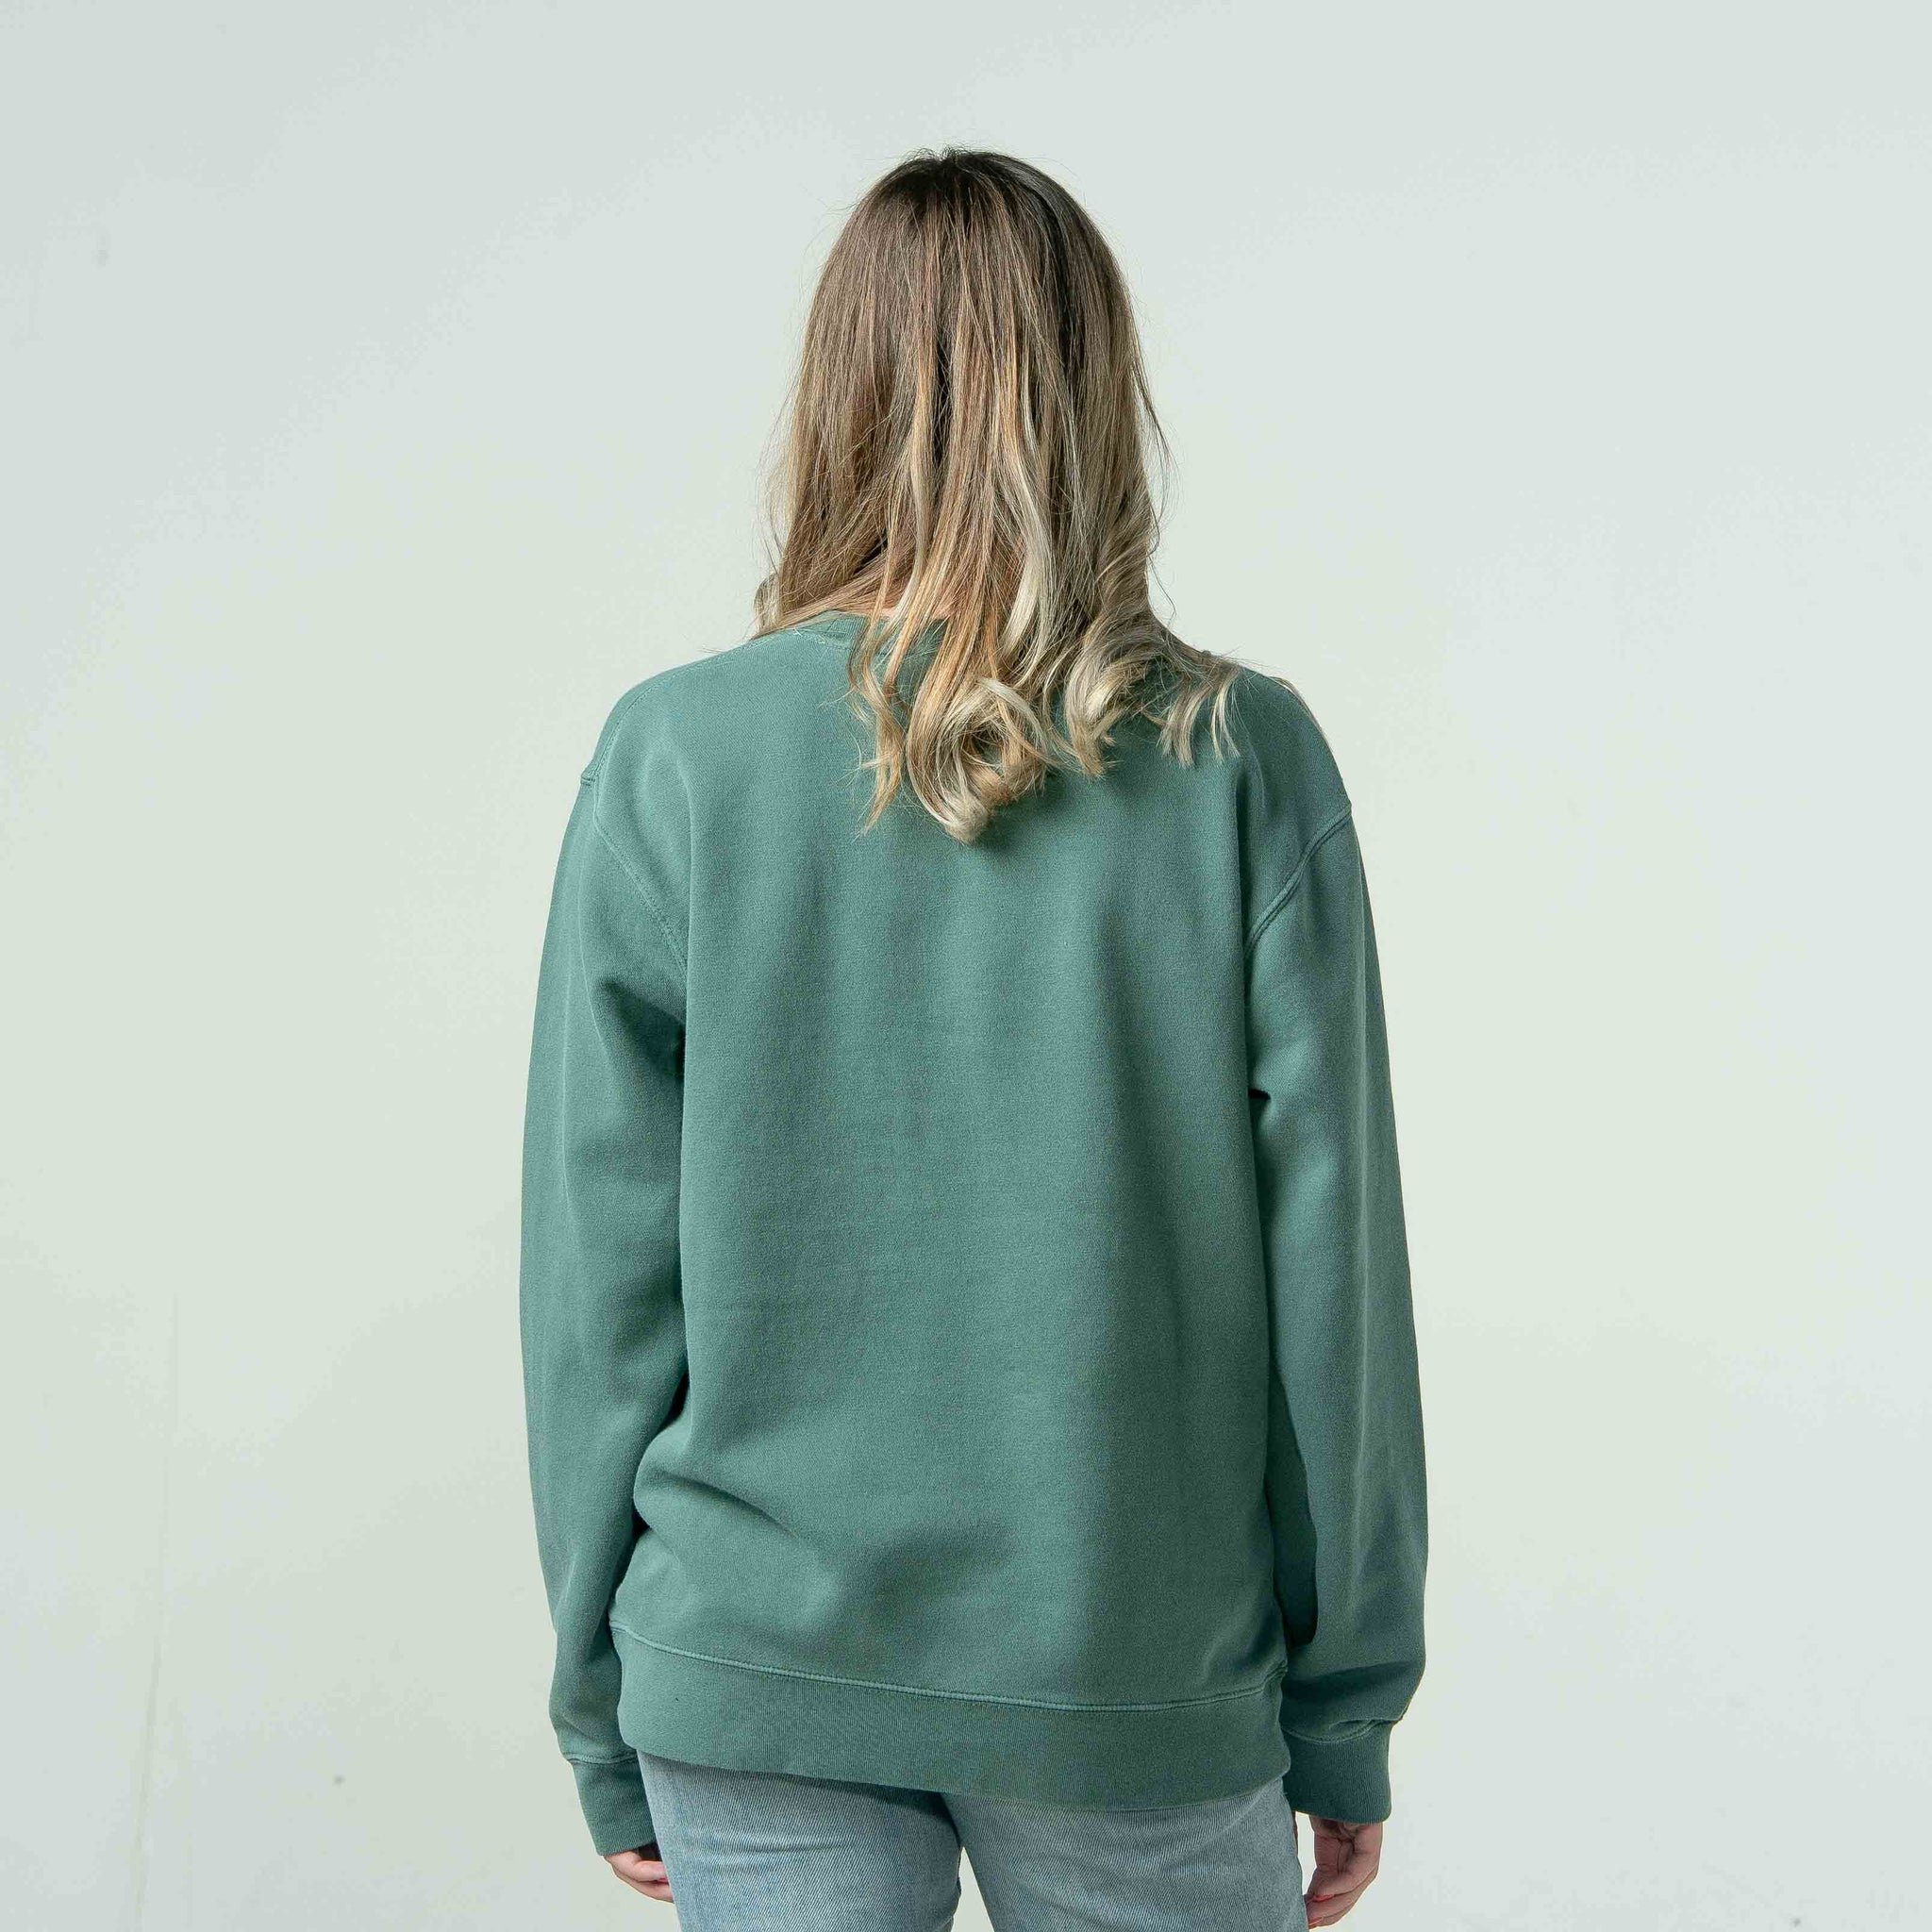 'Elevation' Pigment Dyed Sweatshirt